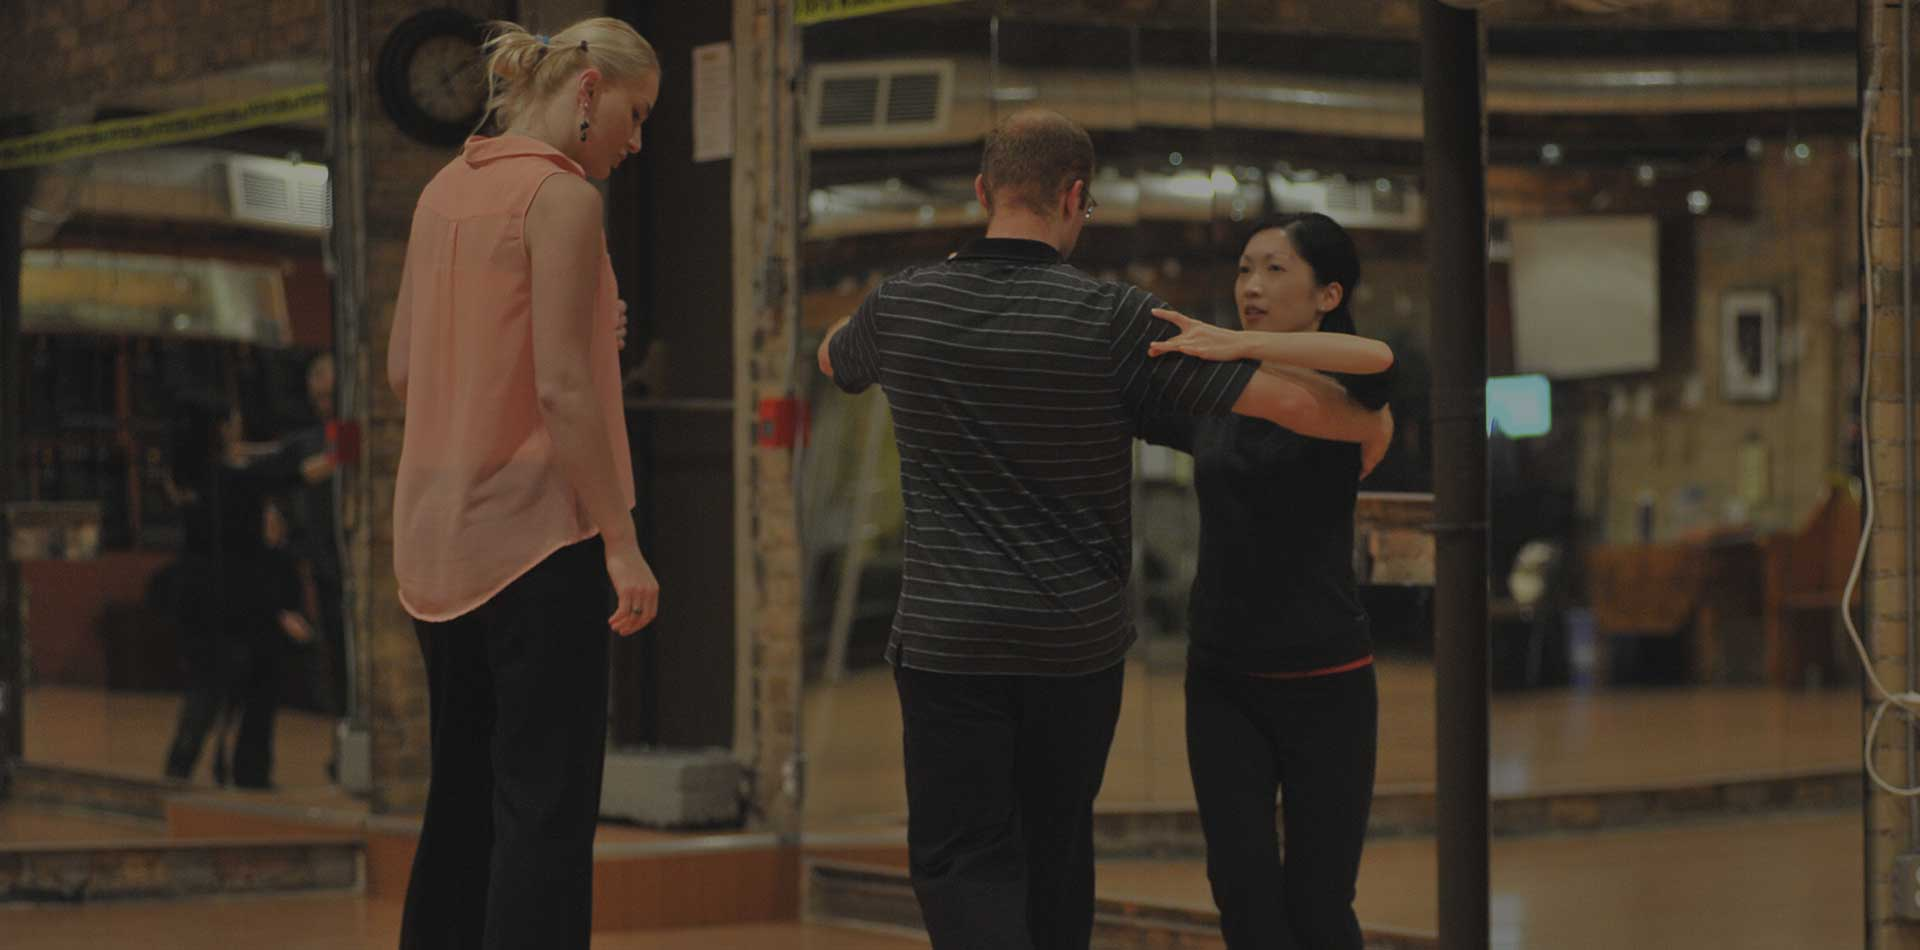 toronto, adult dance lessons, private dance lessons, ballroom dance lessons, latin dance lessons